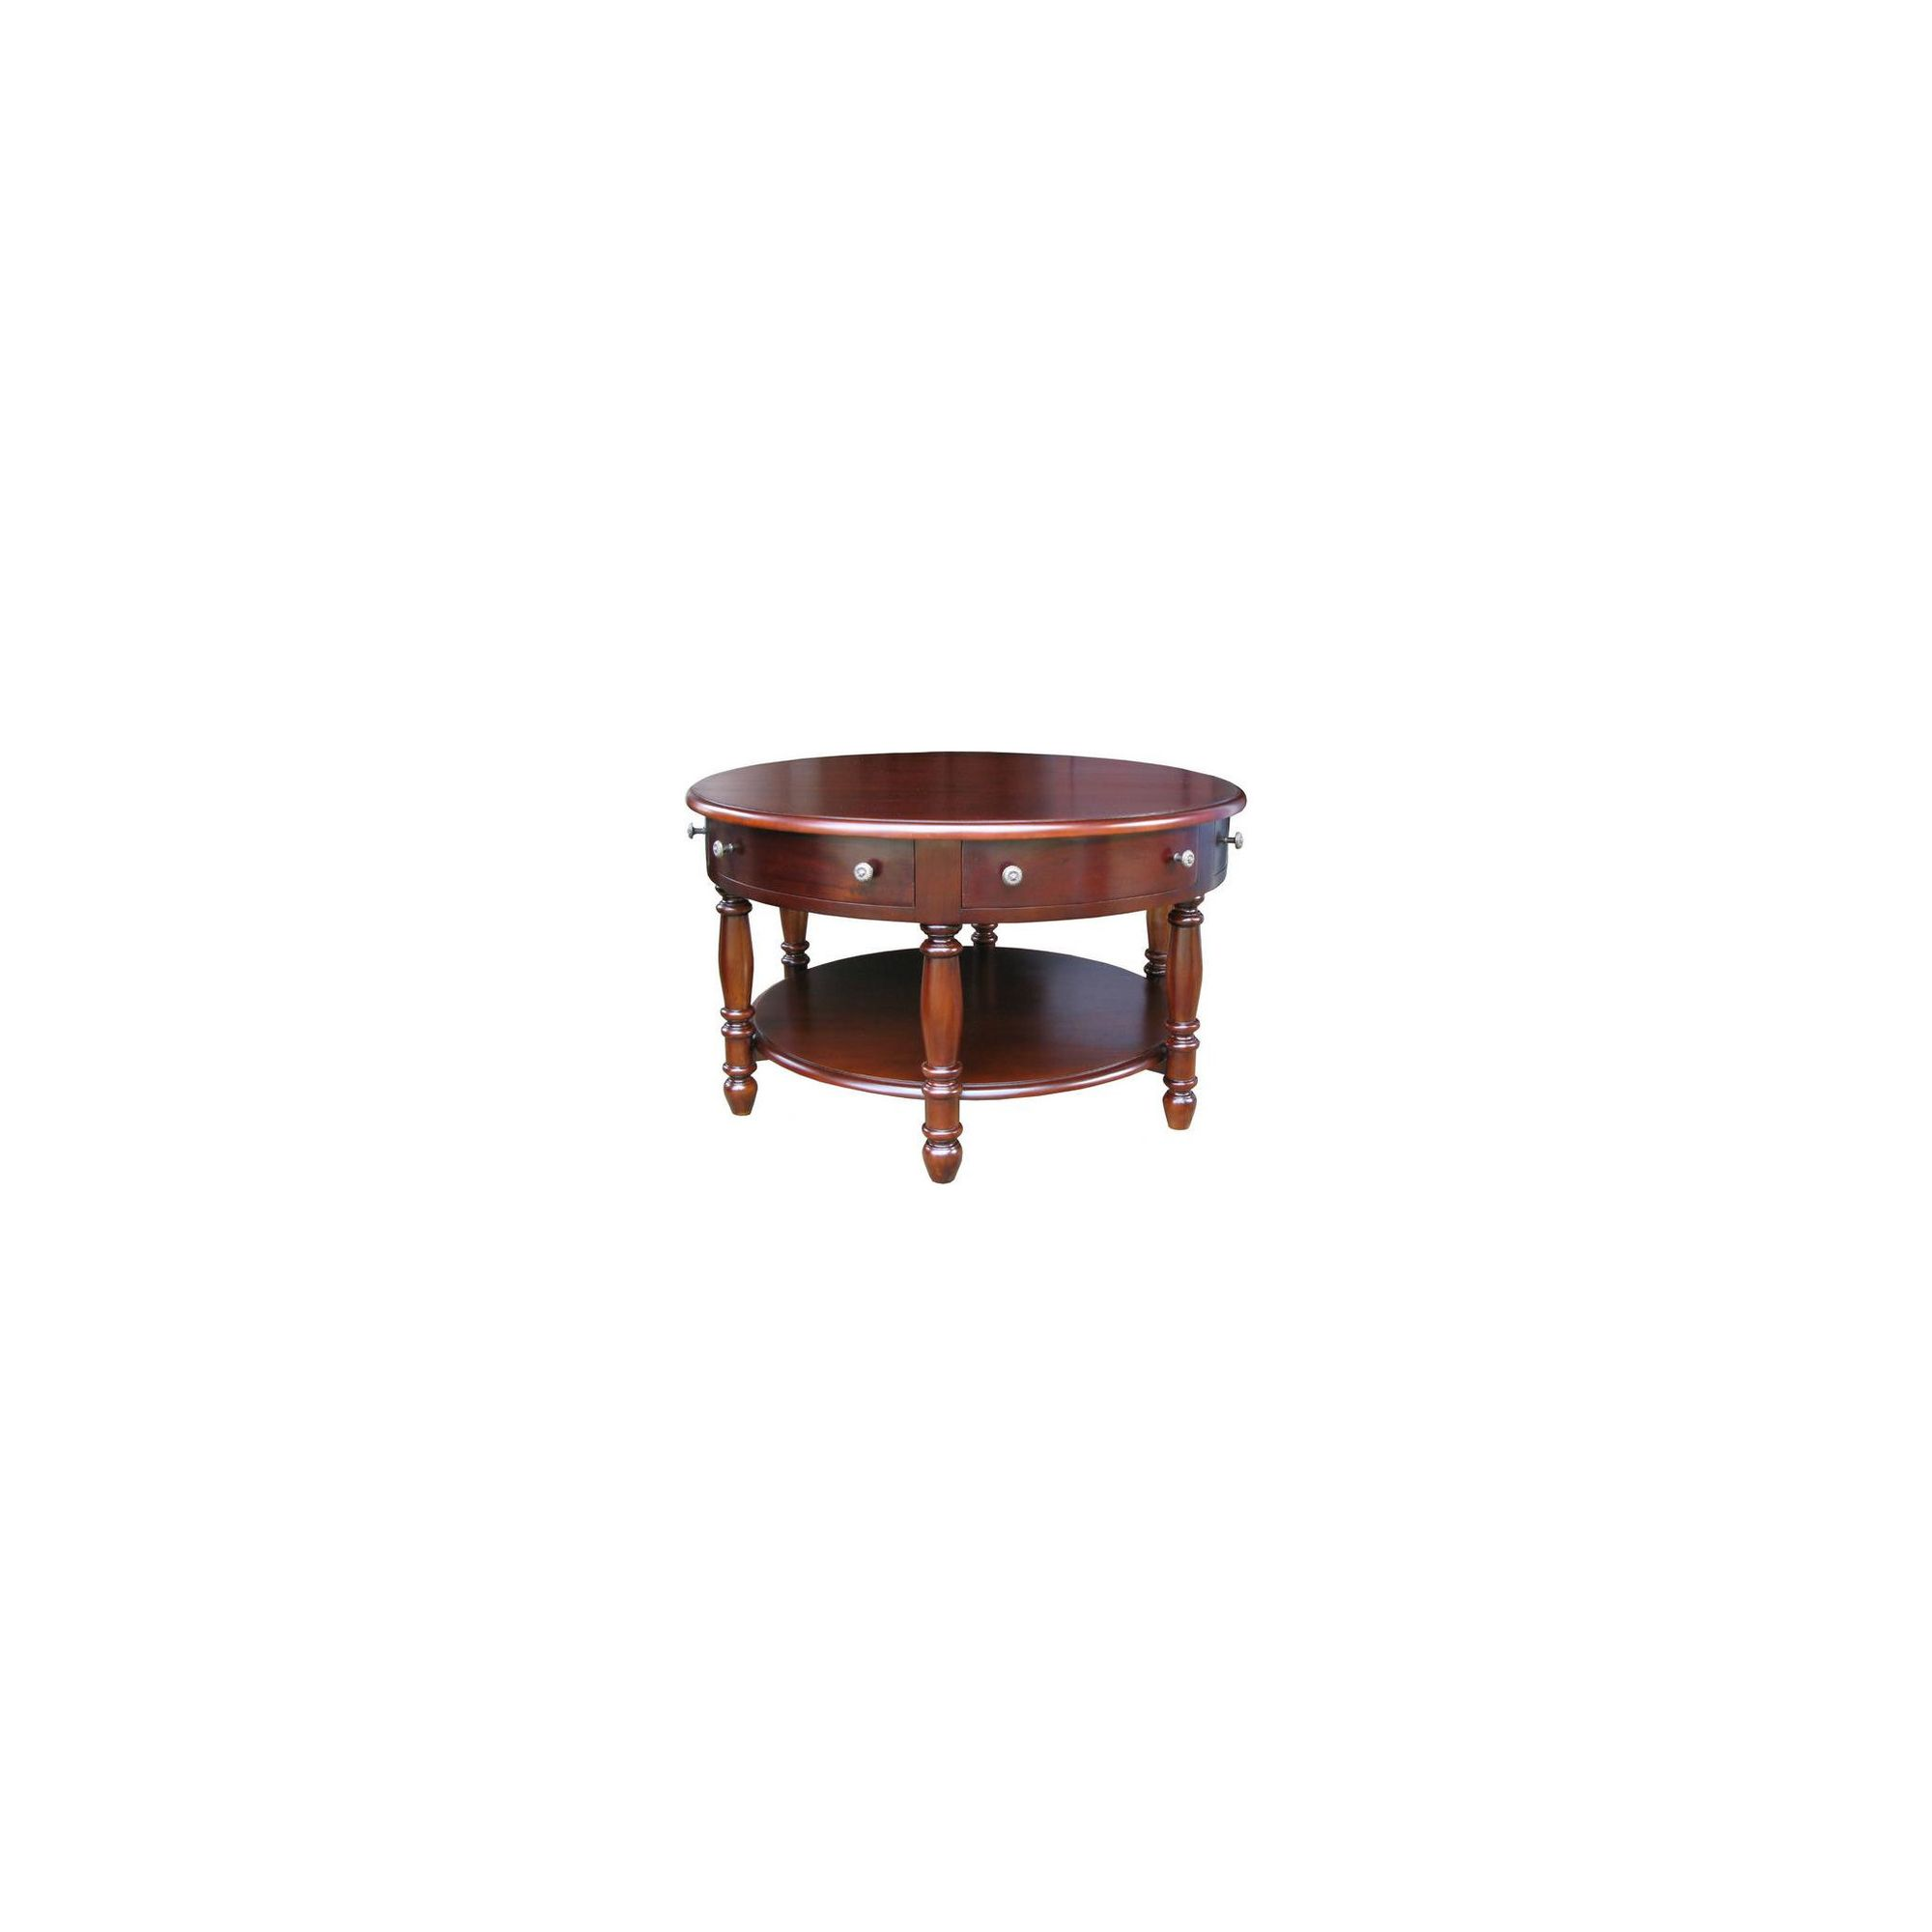 Lock stock and barrel Mahogany 6 Drawer Round Coffee Table in Mahogany at Tesco Direct